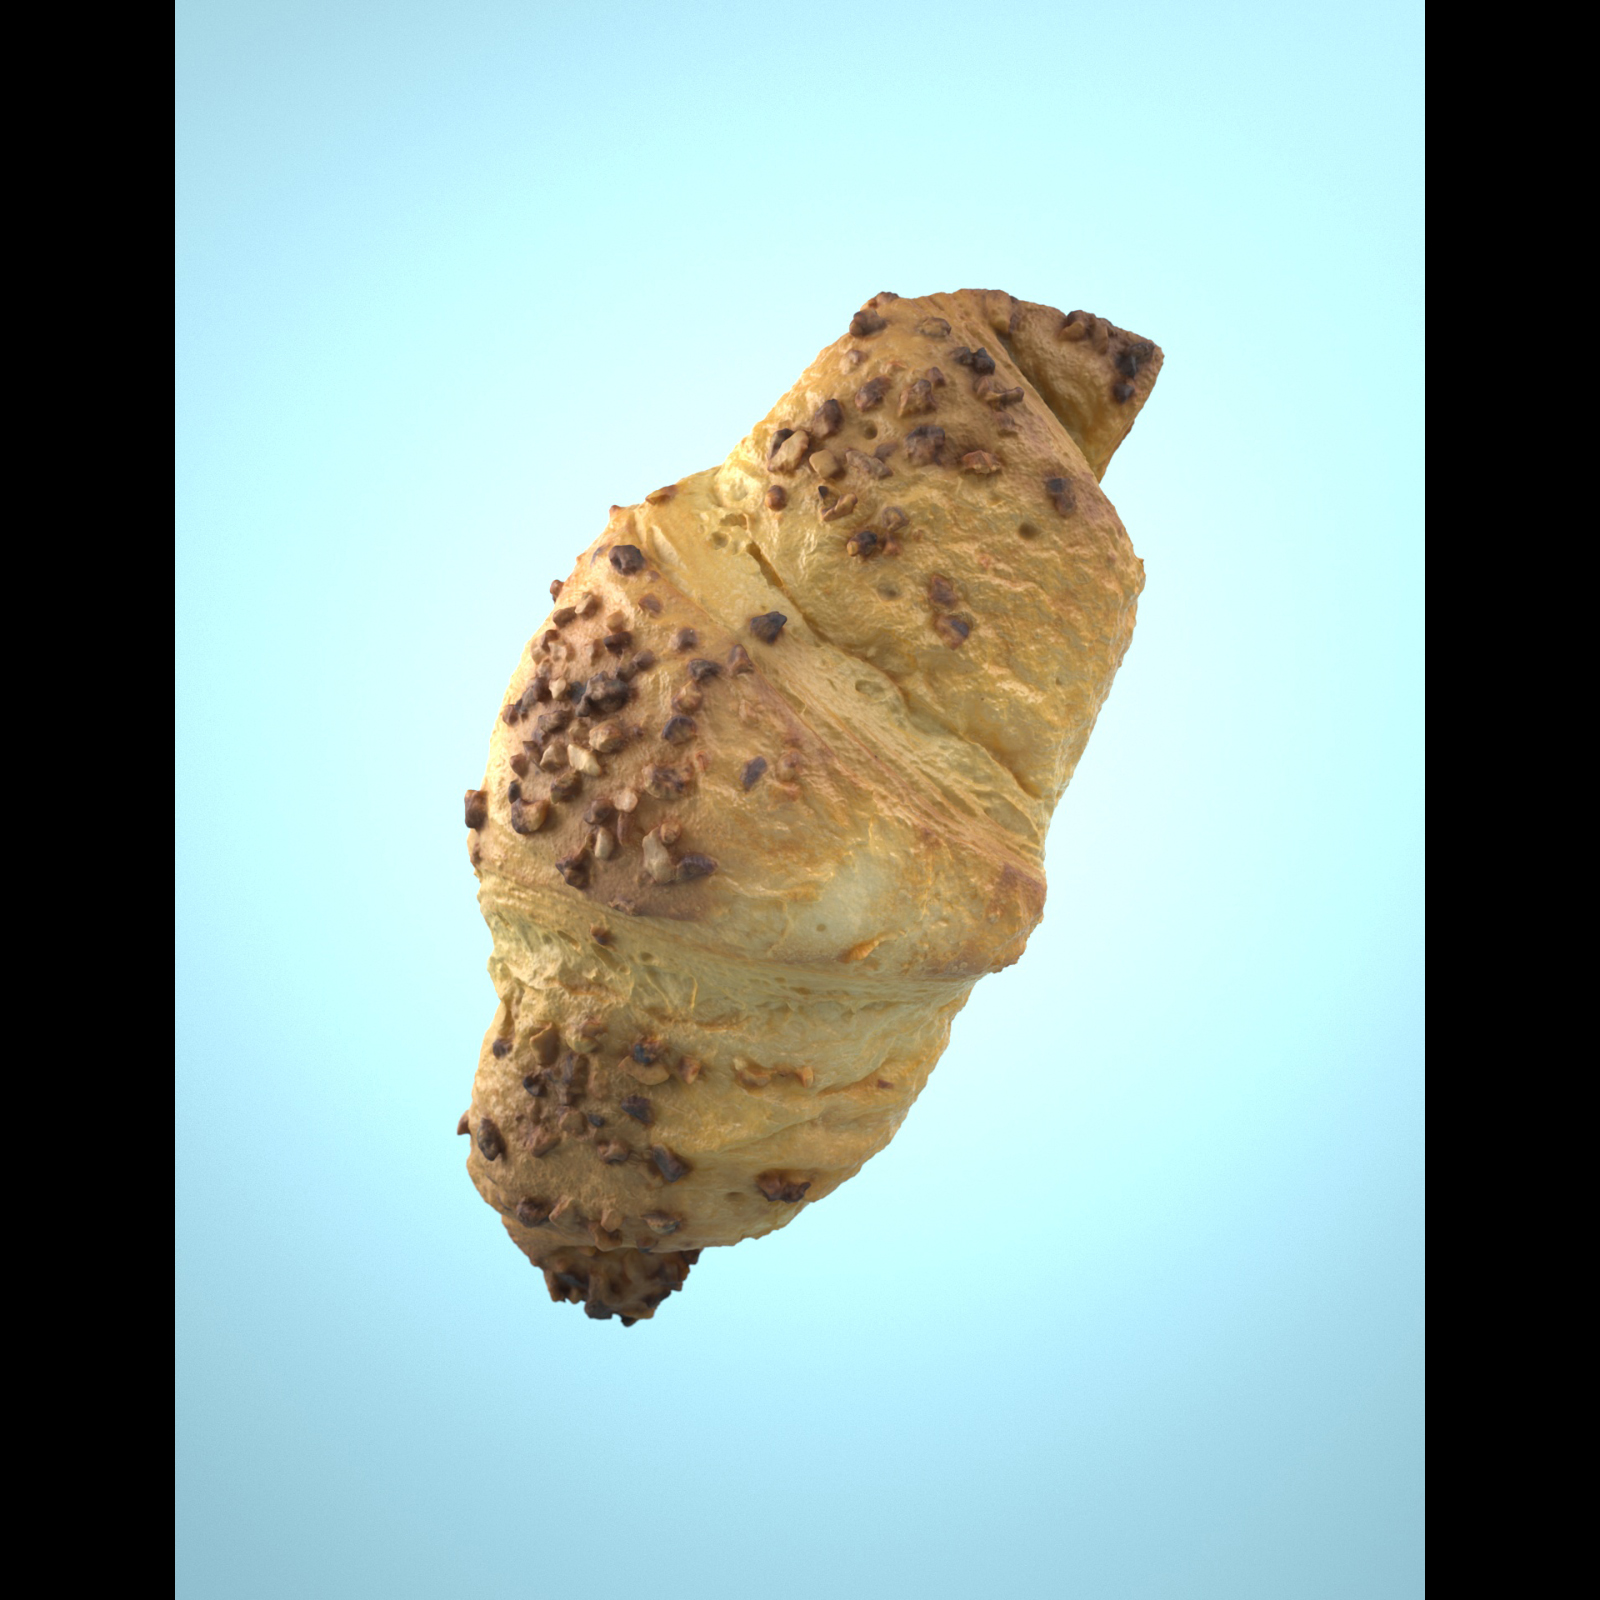 Photorealistic Delicious Chocolate Croissant 3D model - Extended License